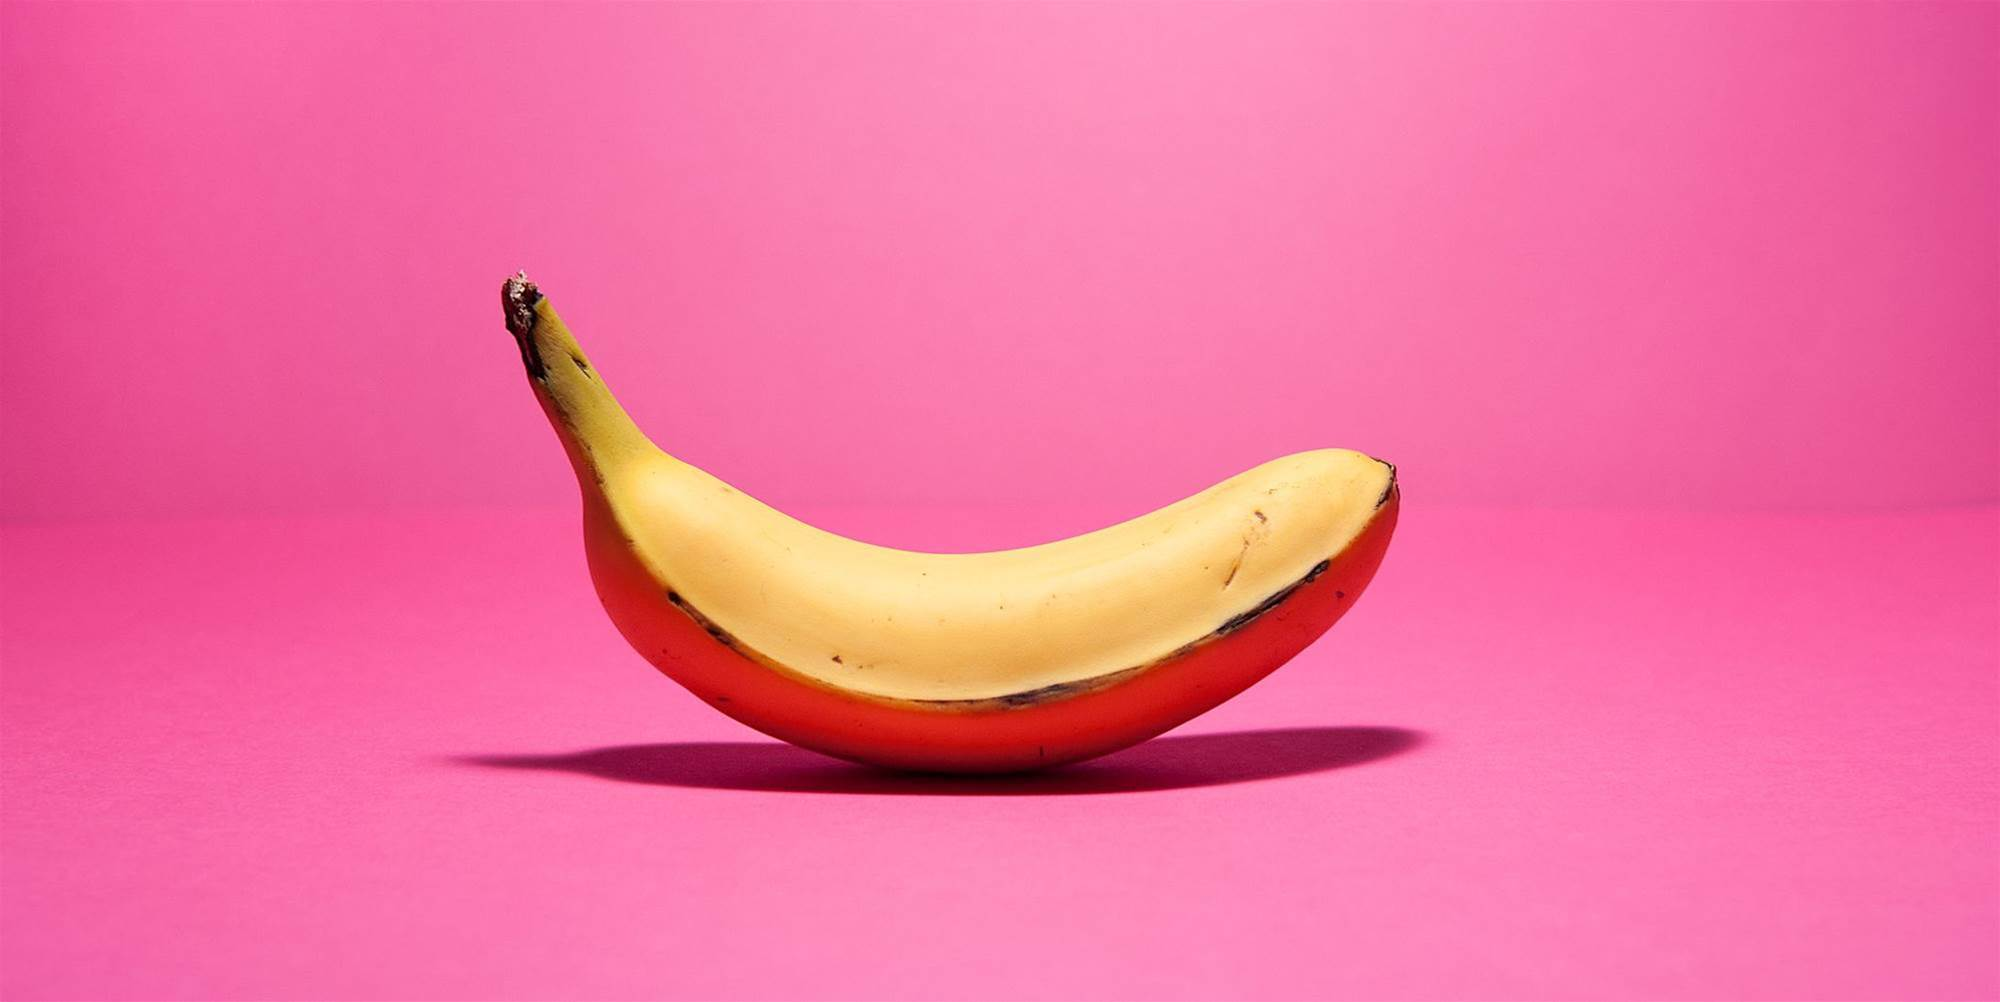 10 Science-Backed Health Benefits of Bananas